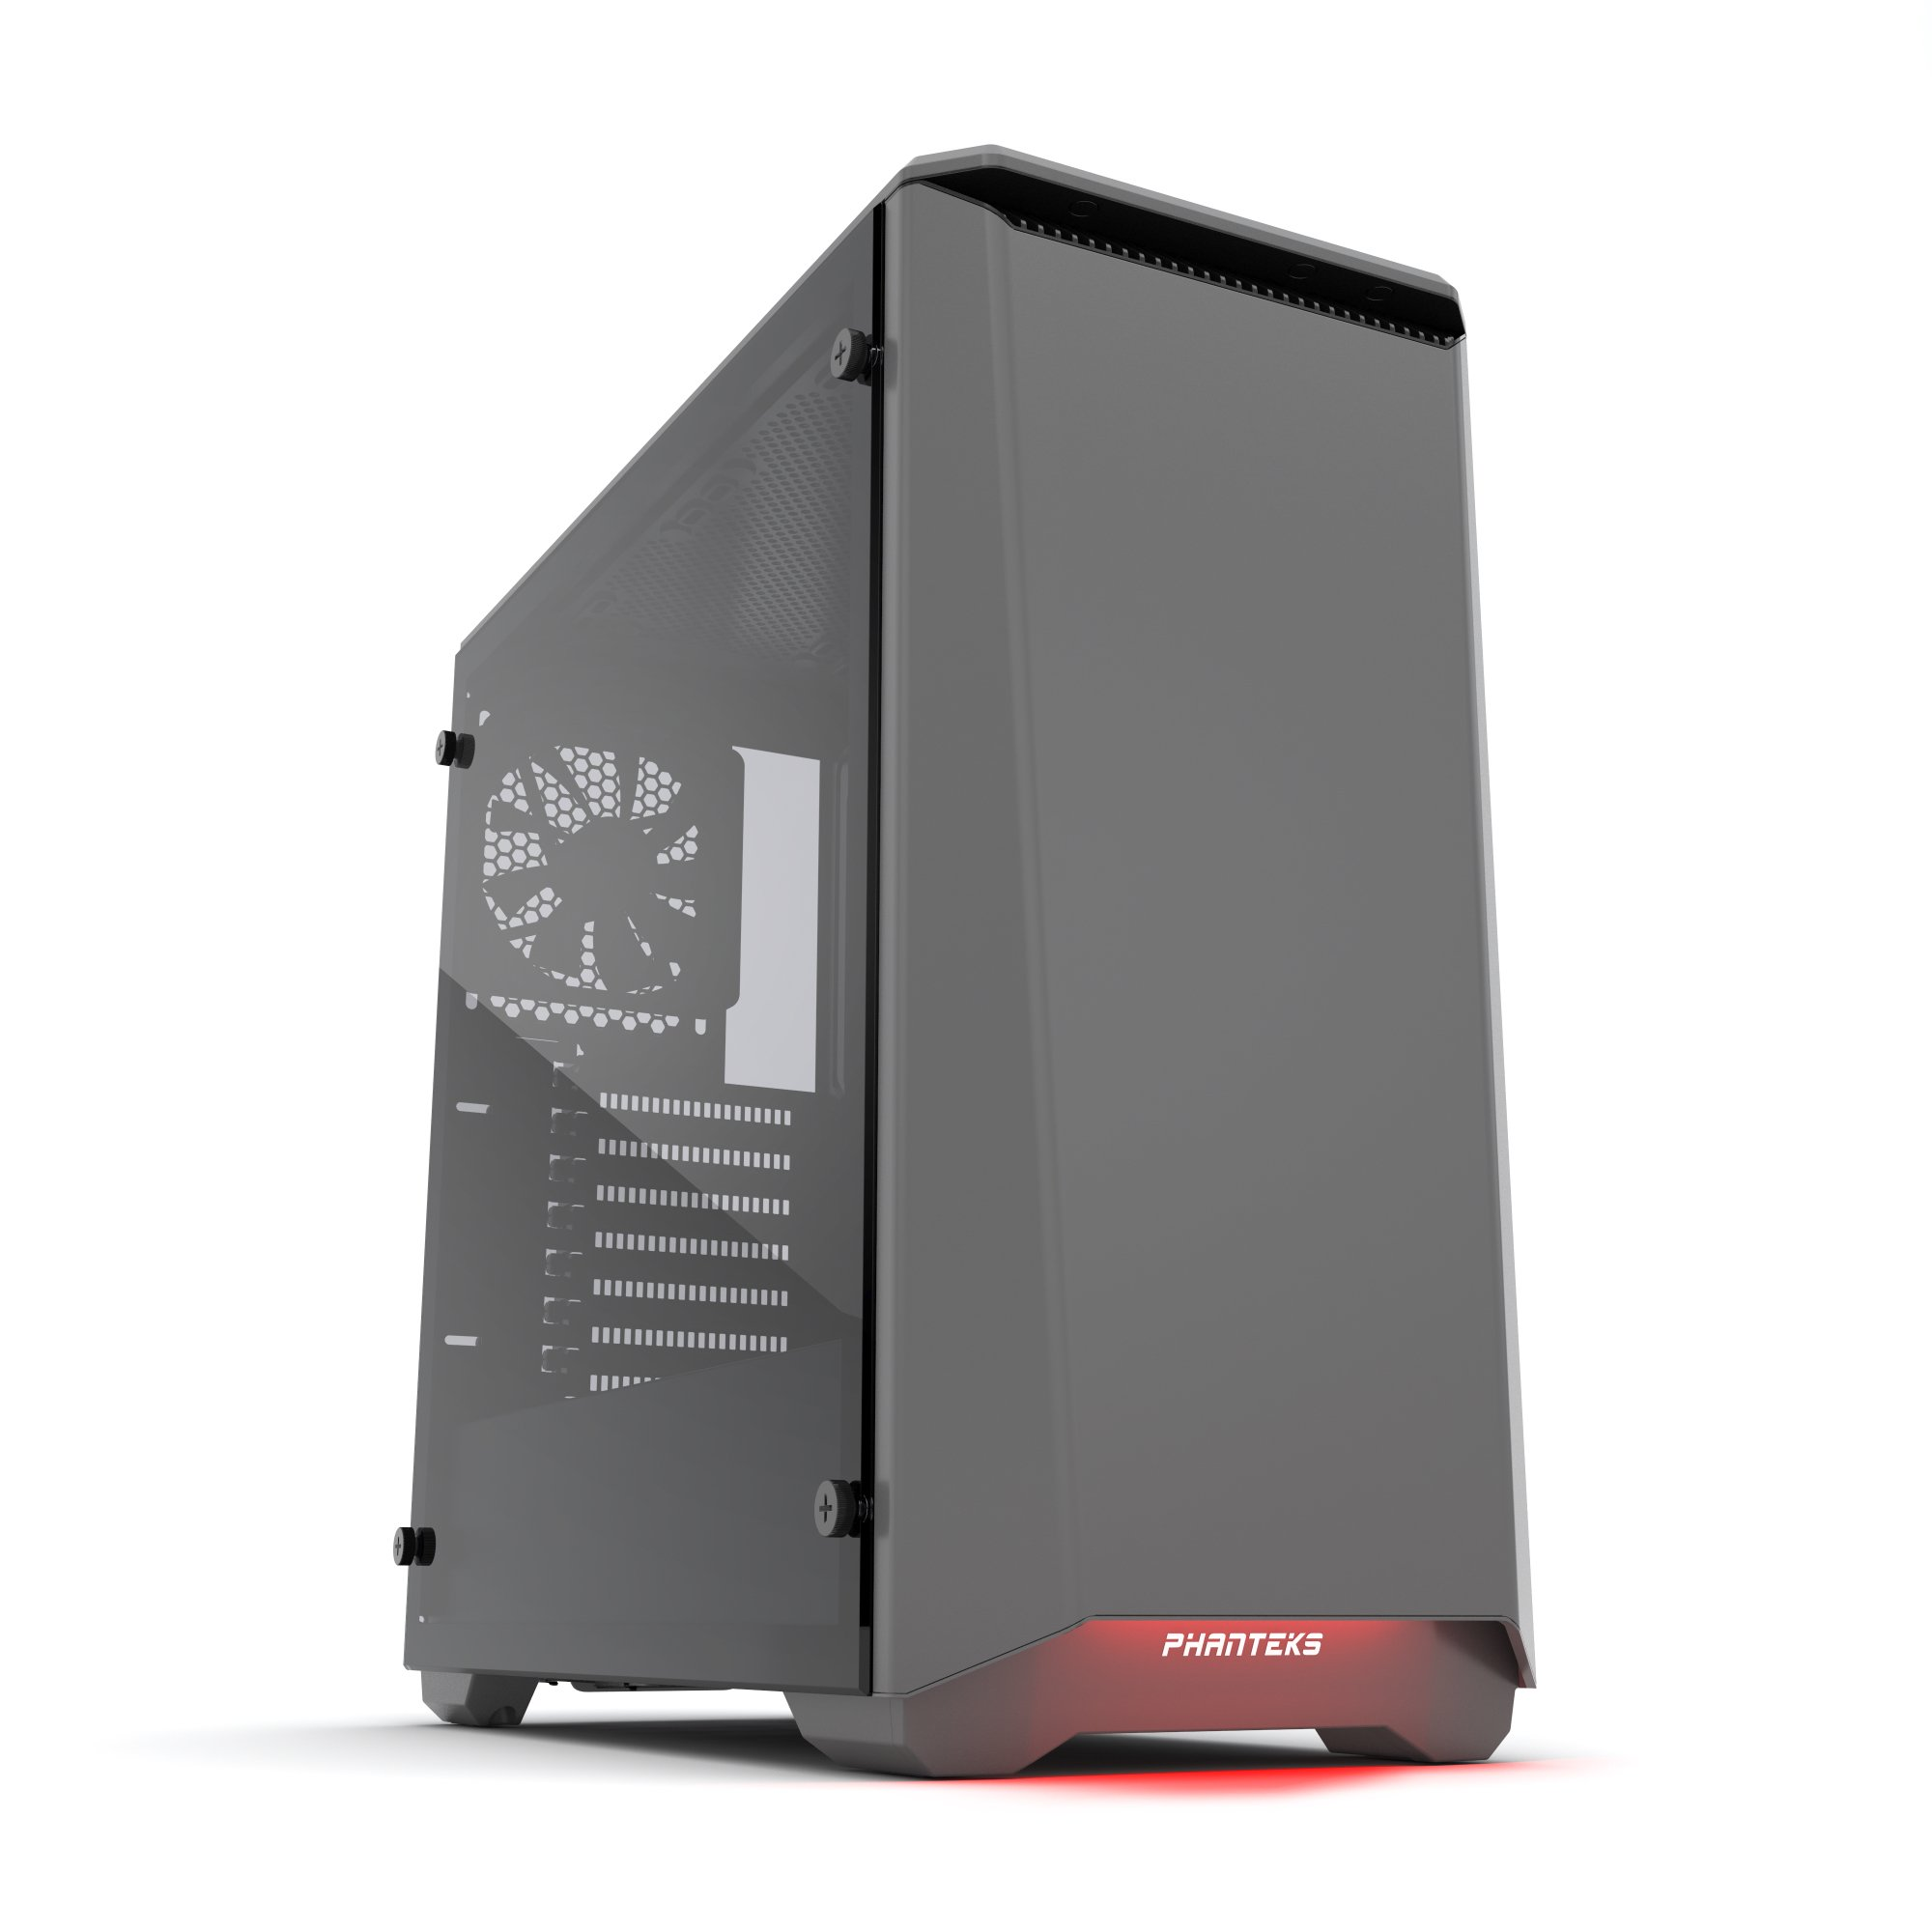 Phanteks PH-EC416PSTG_AG Eclipse P400S Silent Edition with Tempered Glass, Anthracite Grey Cases by Phanteks (Image #1)